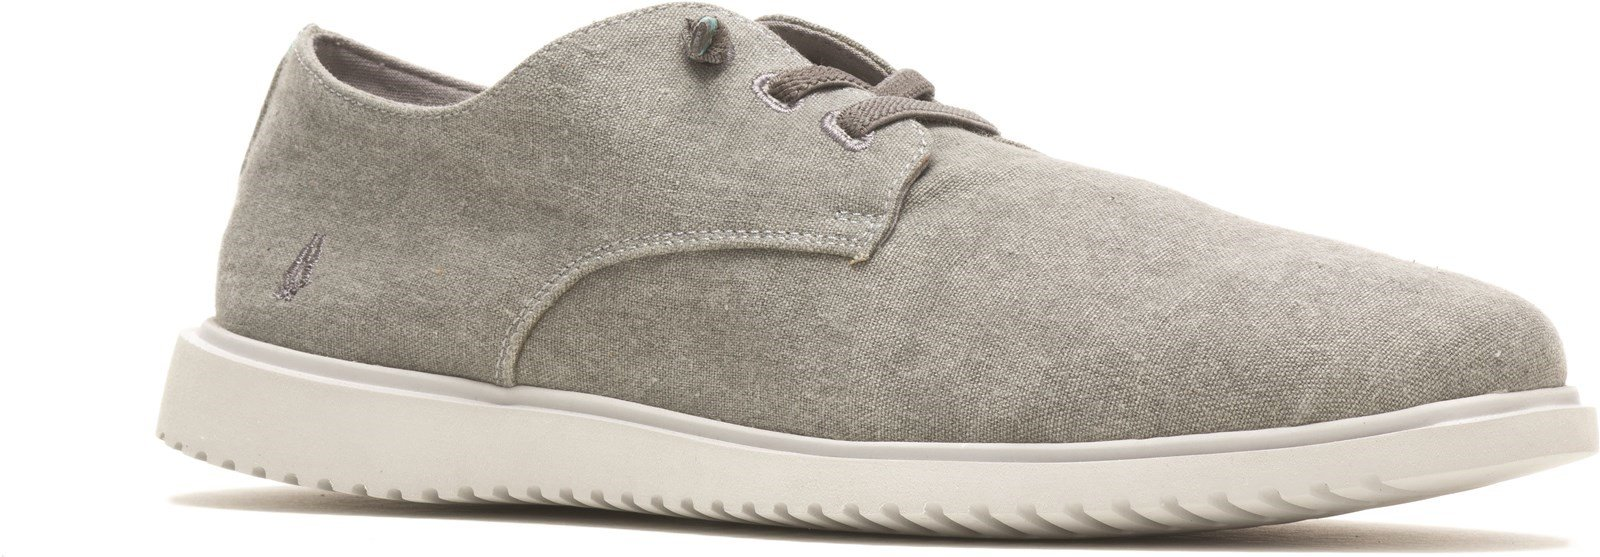 Hush Puppies Men's Everyday Lace Trainer Various Colours 31982 - Grey 6